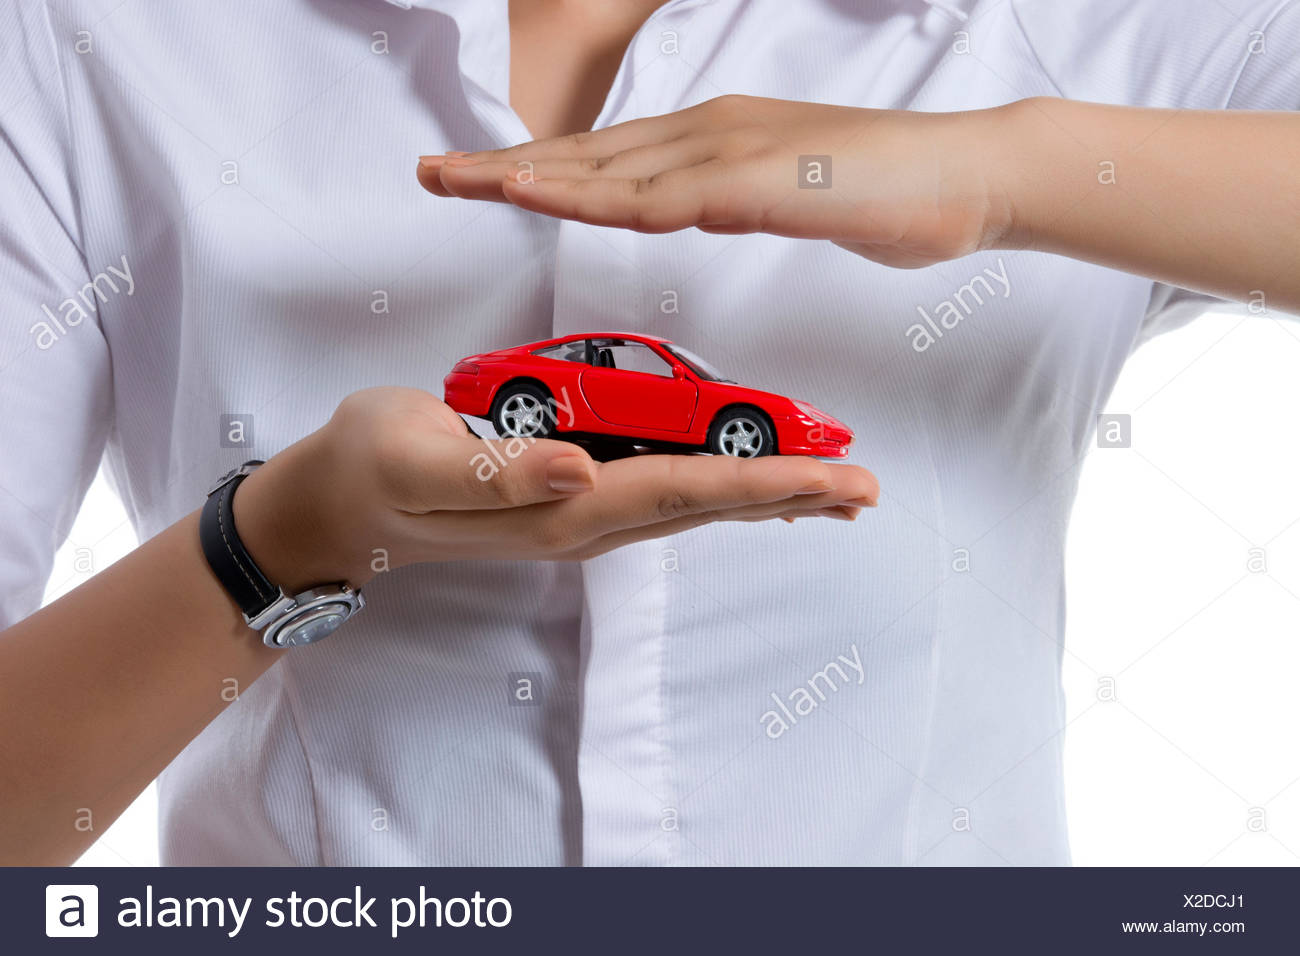 Midsection of insurance agent covering toy car against white background - Stock Image